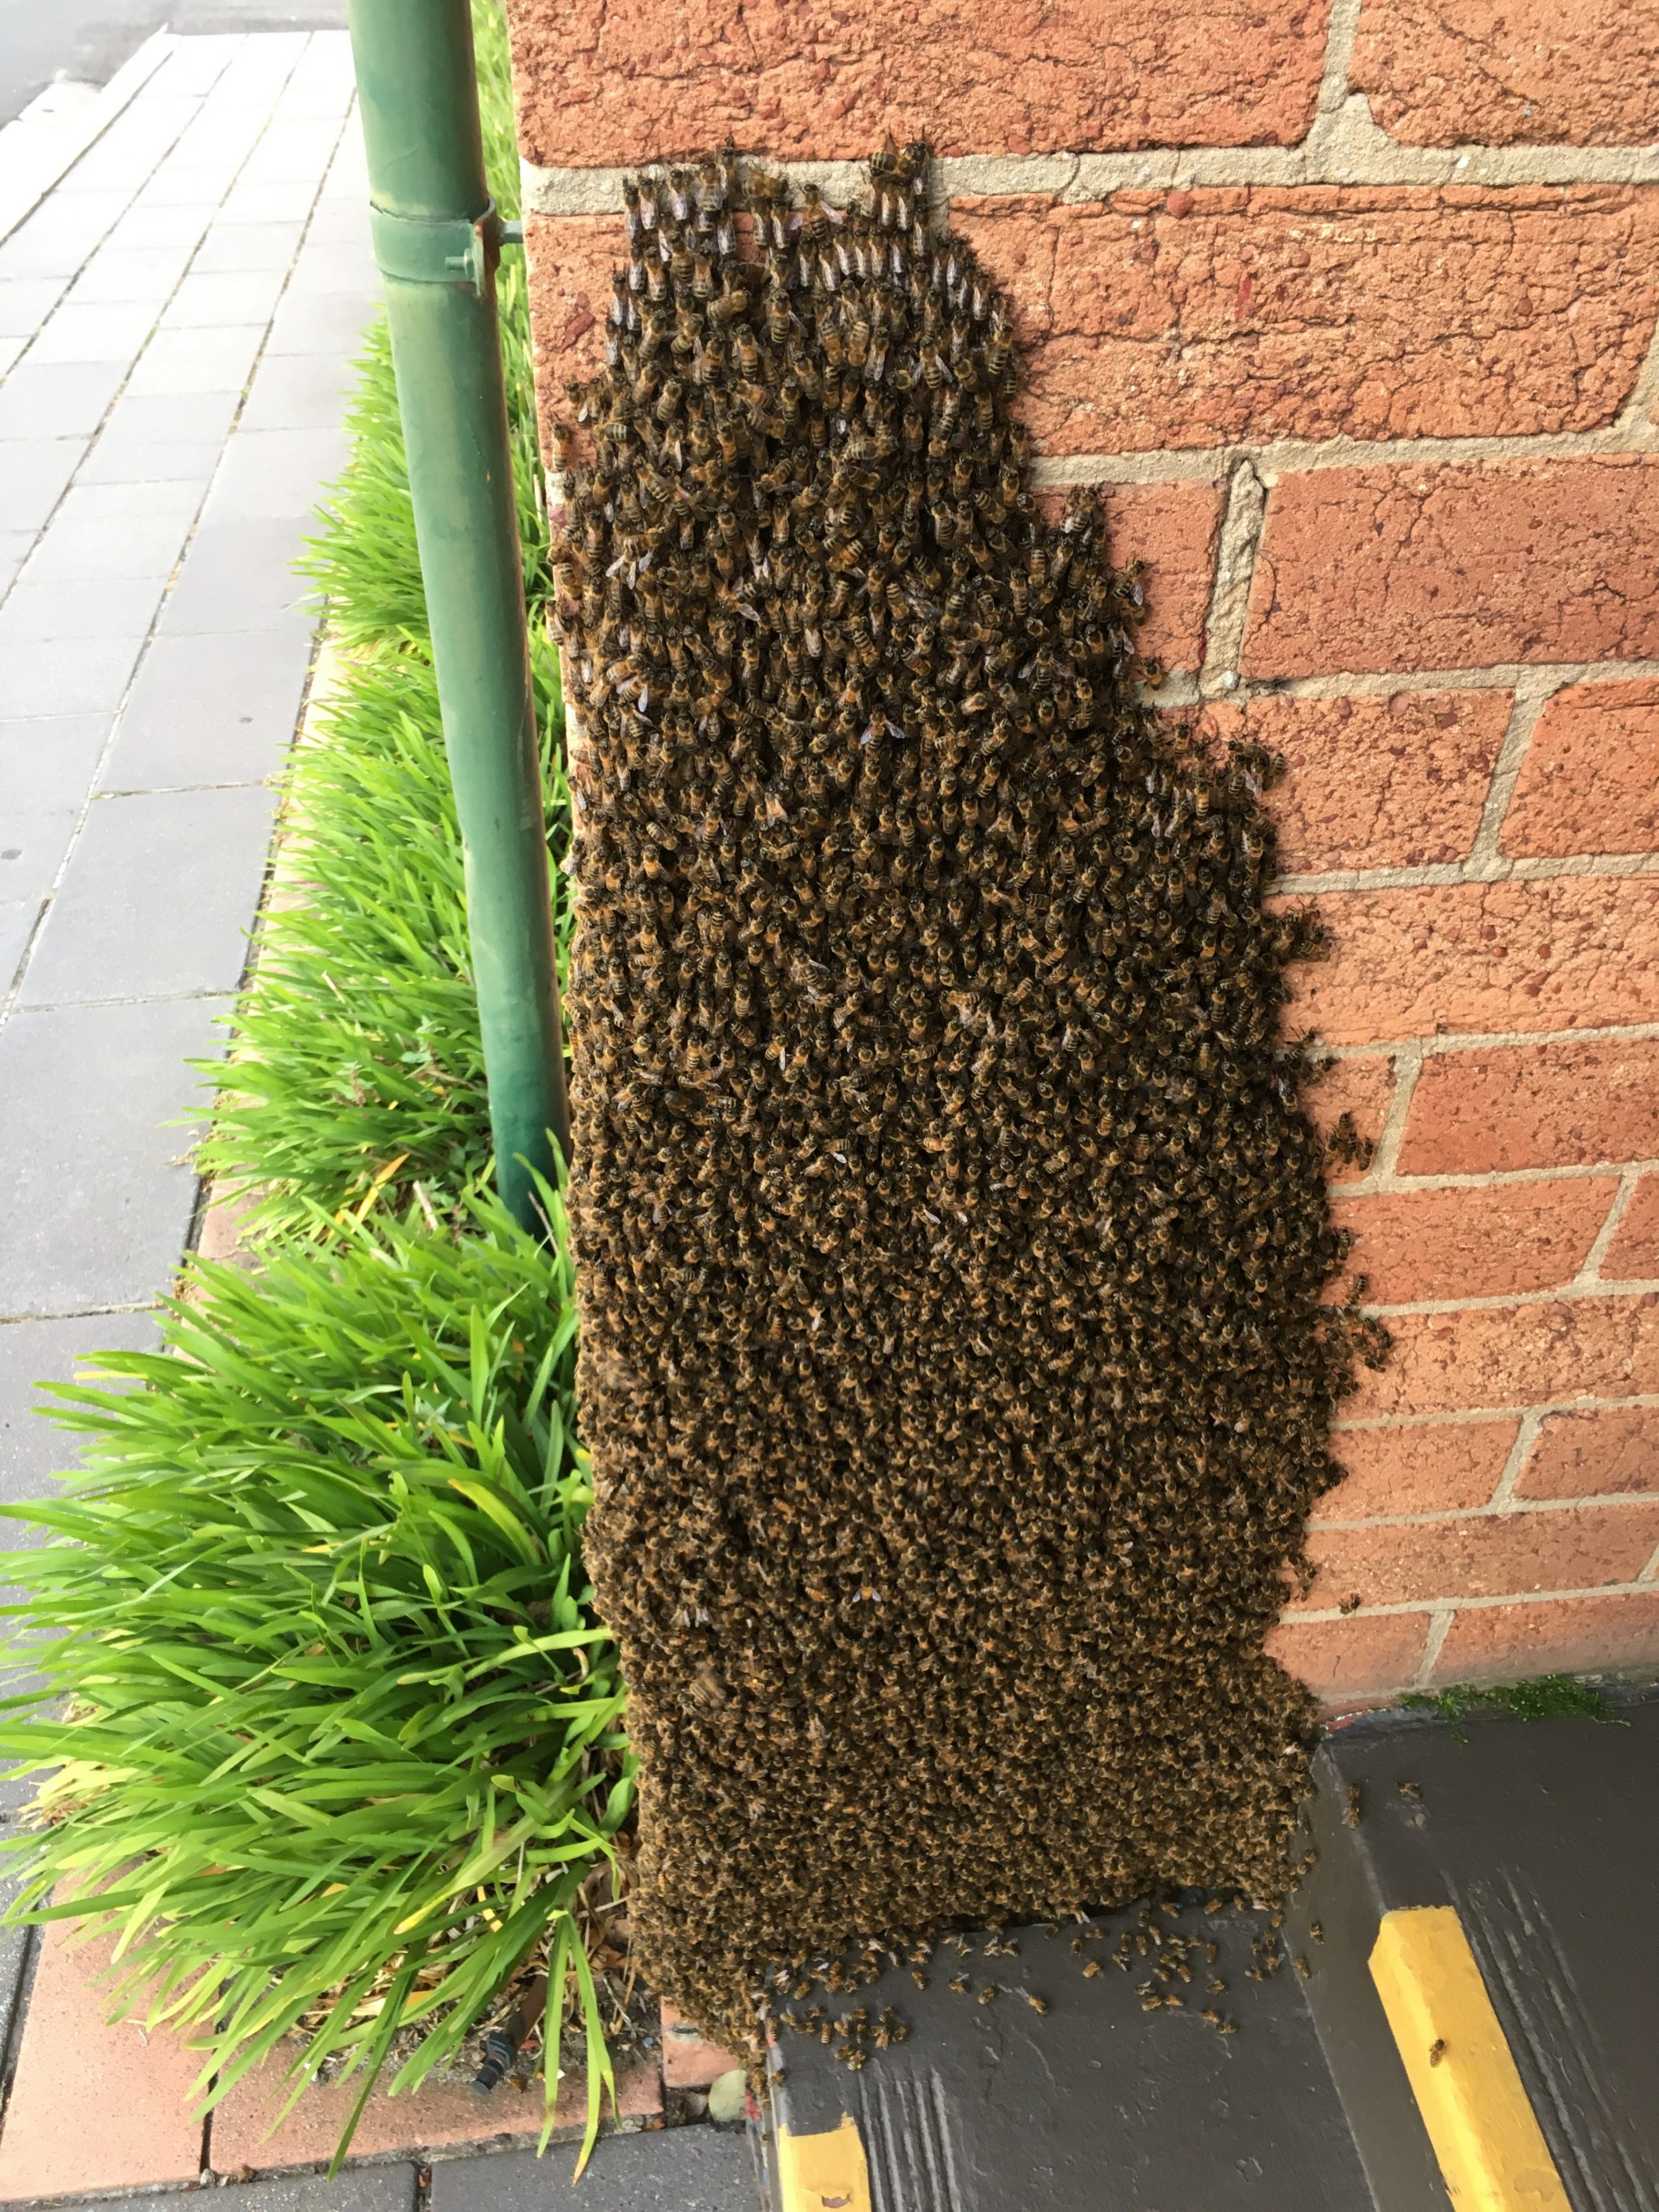 Bee Removal Melbourne & Swarm Removal